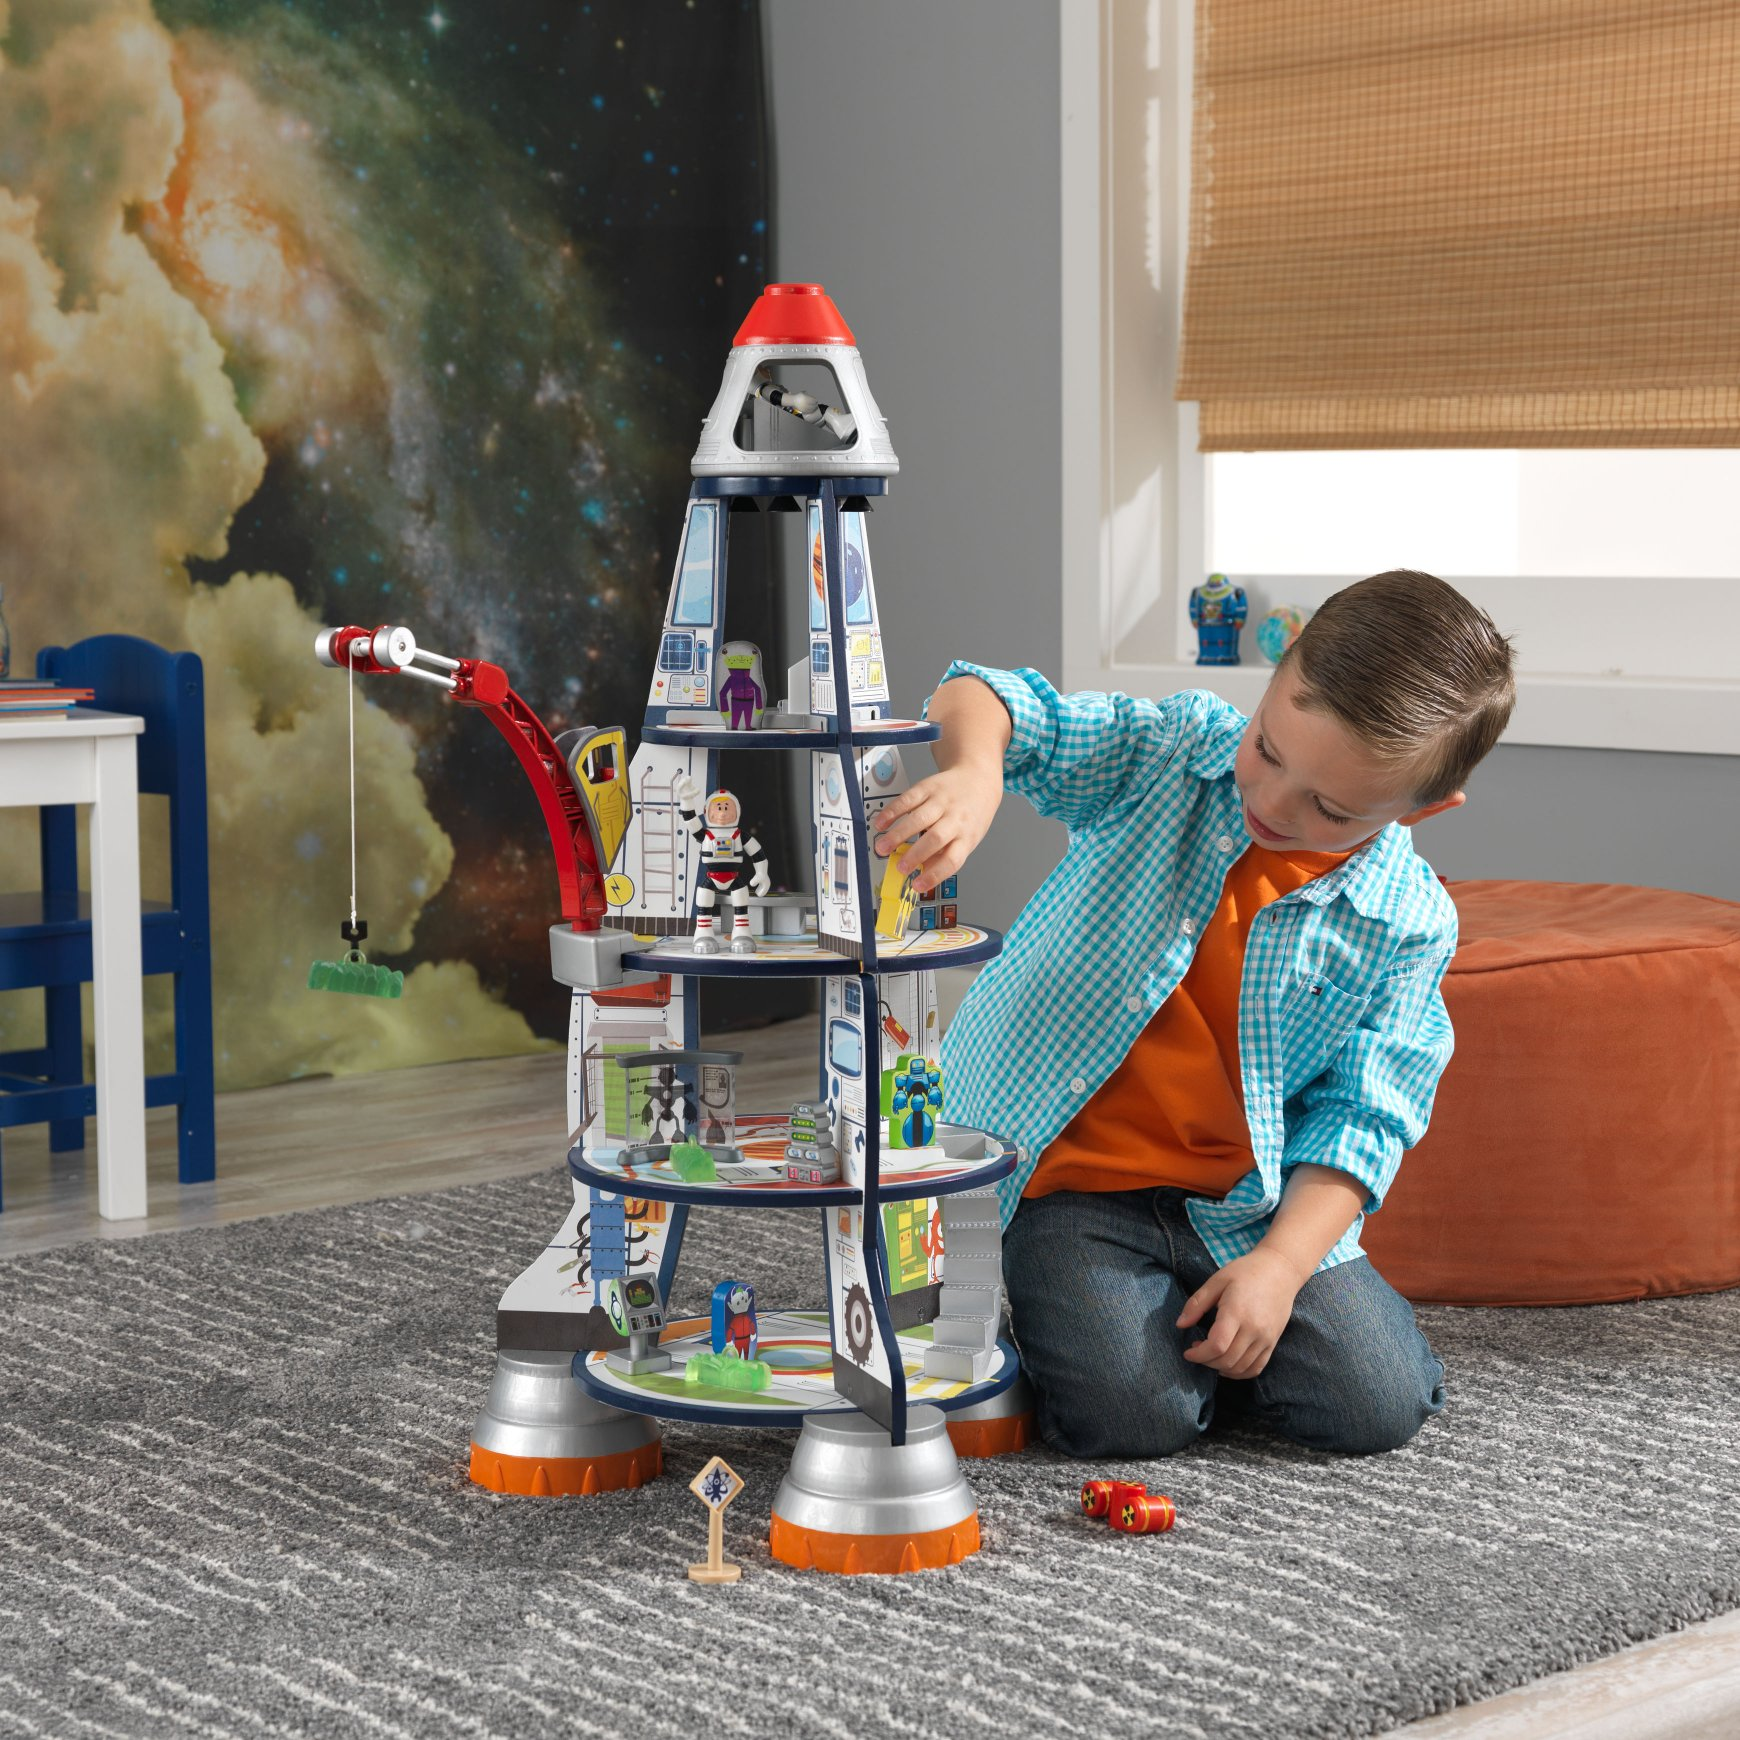 Best Spaceship Rockets Toys For Kids : Rocket ship wooden play set for children in s a